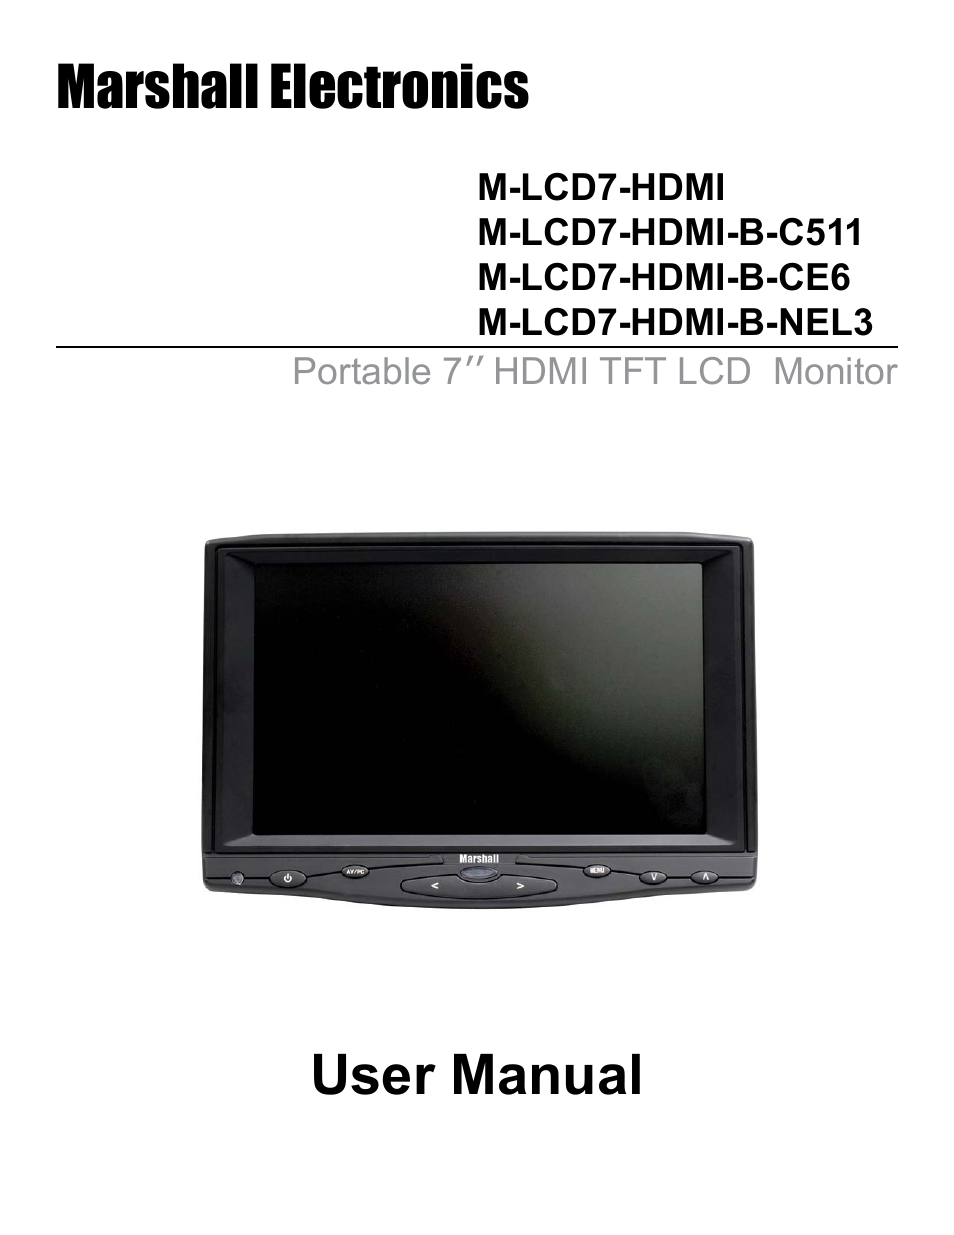 marshall electronic m lcd7 hdmi b ce6 user manual 16 pages also rh manualsdir com Scott's Electronics Marshall MN Scott's Electronics Marshall MN